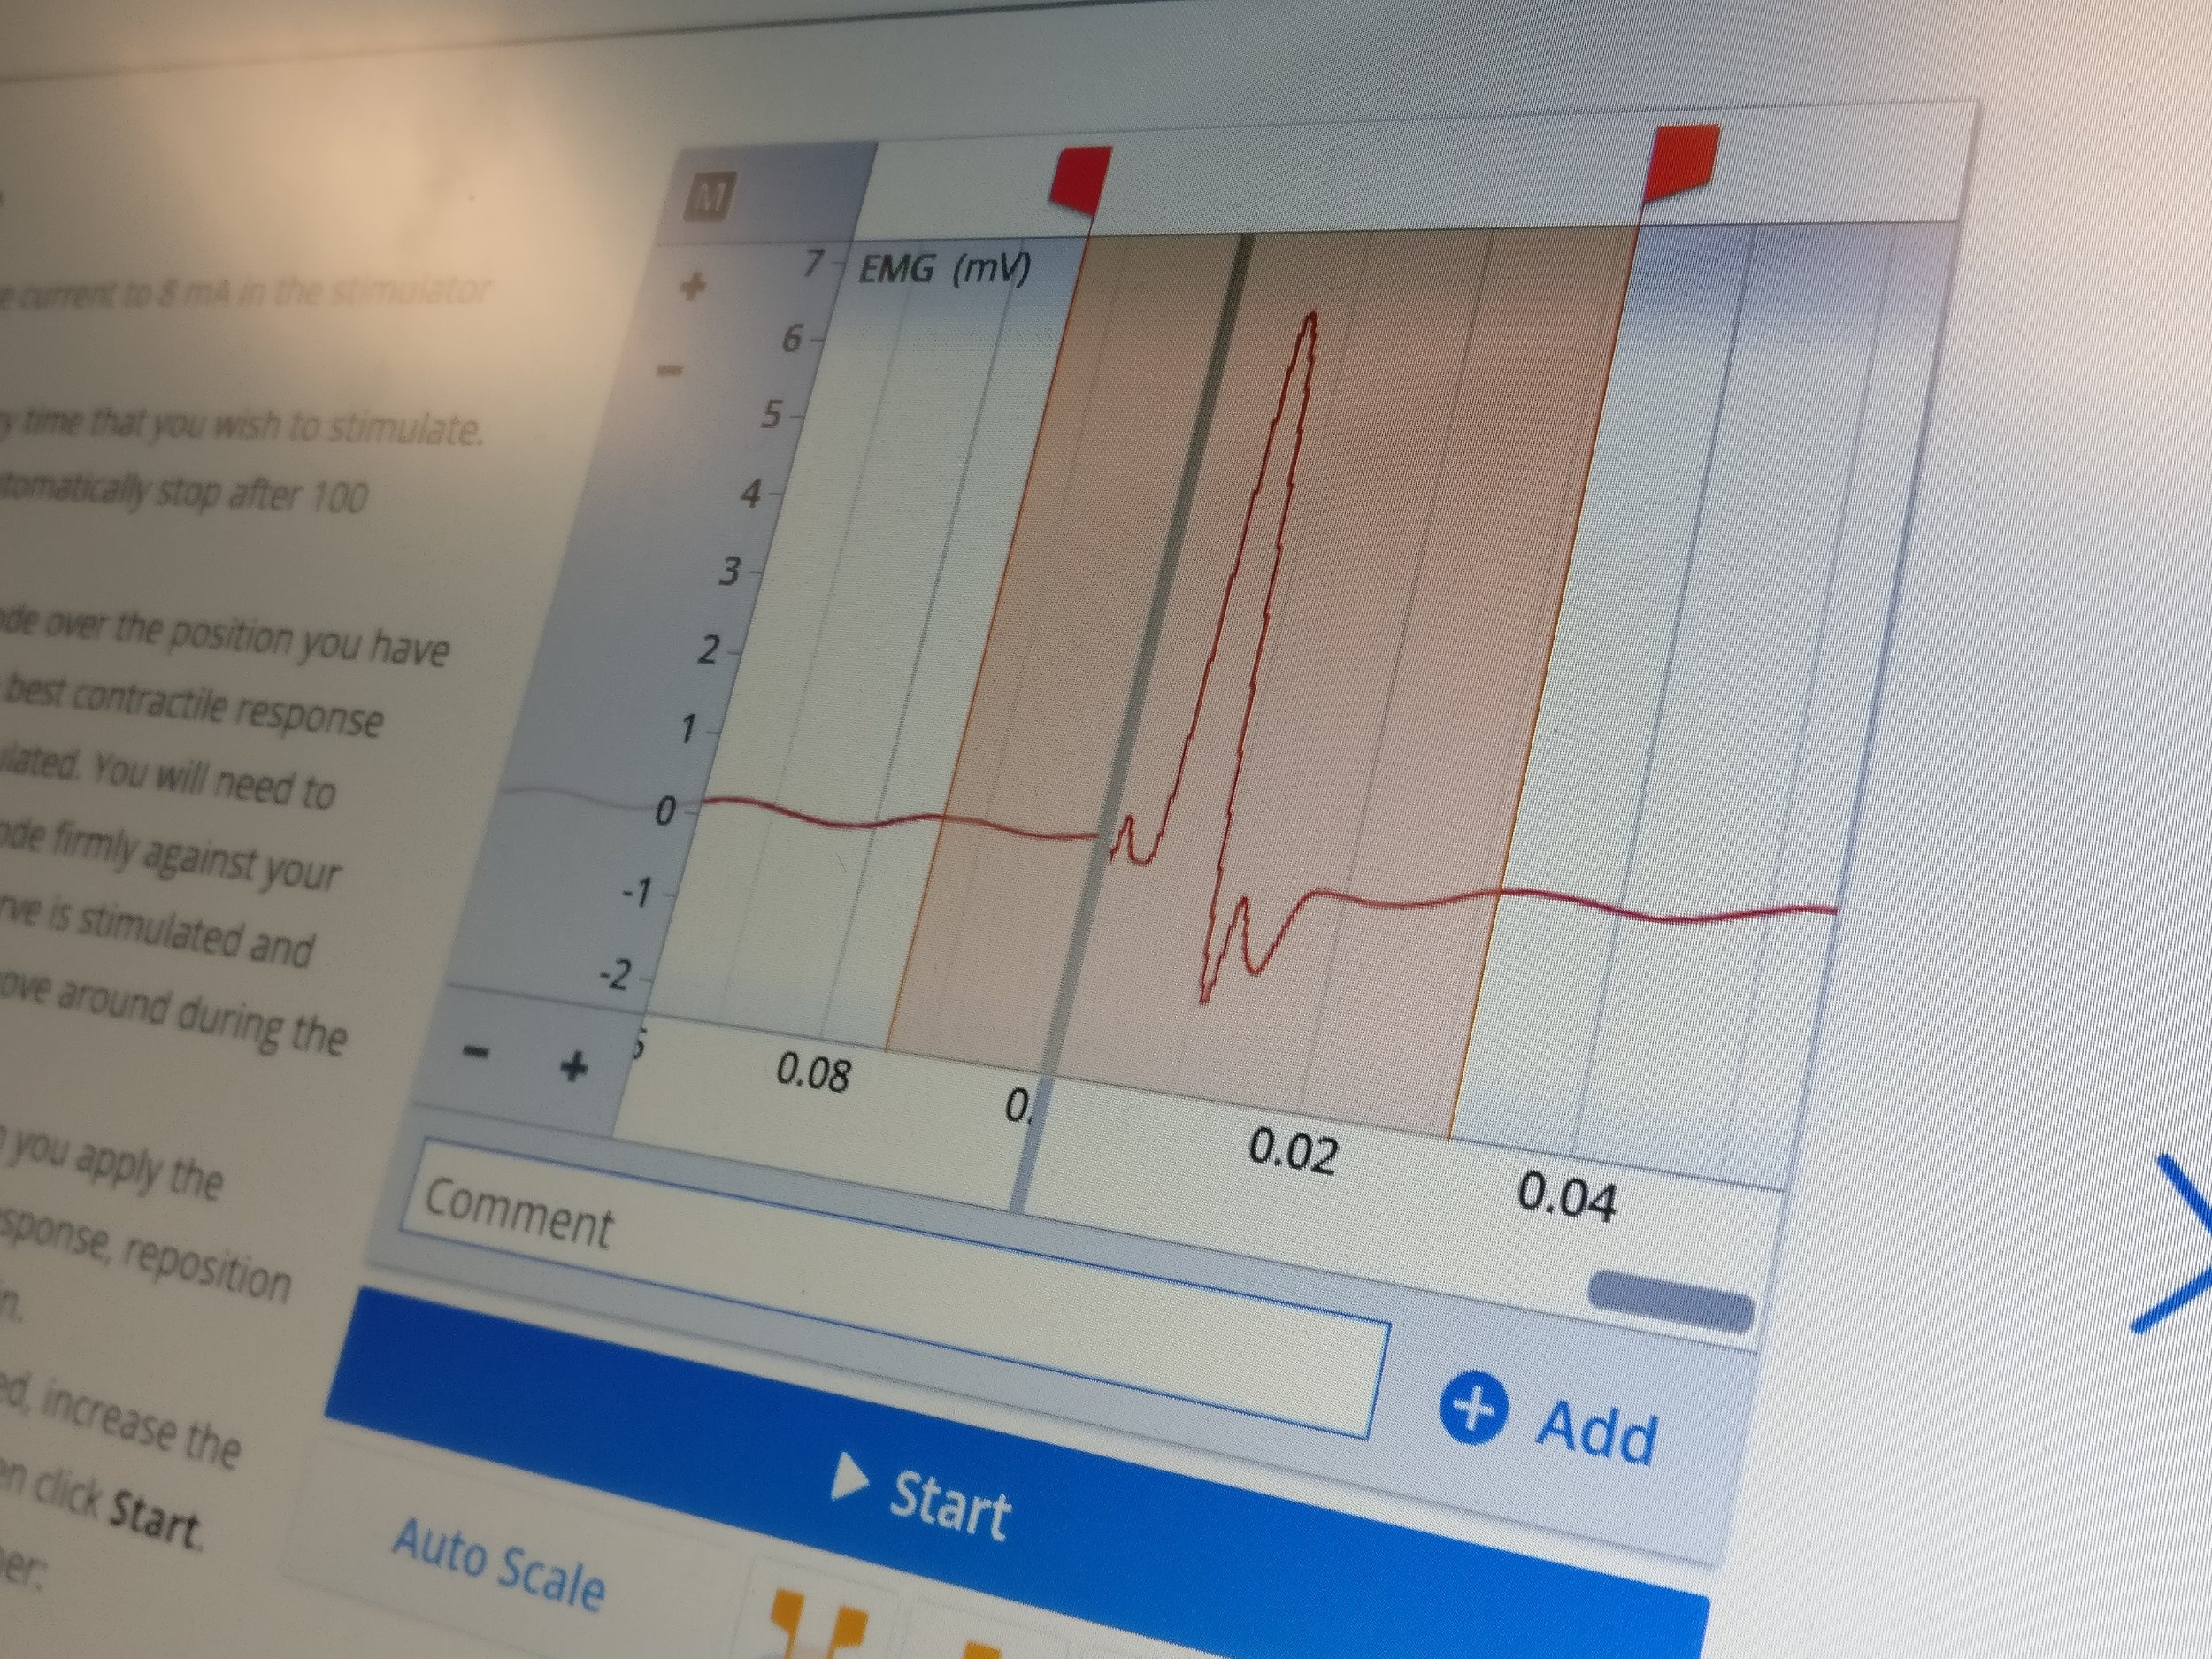 We were able to measure the electrical activity in the muscle when movement was elicited